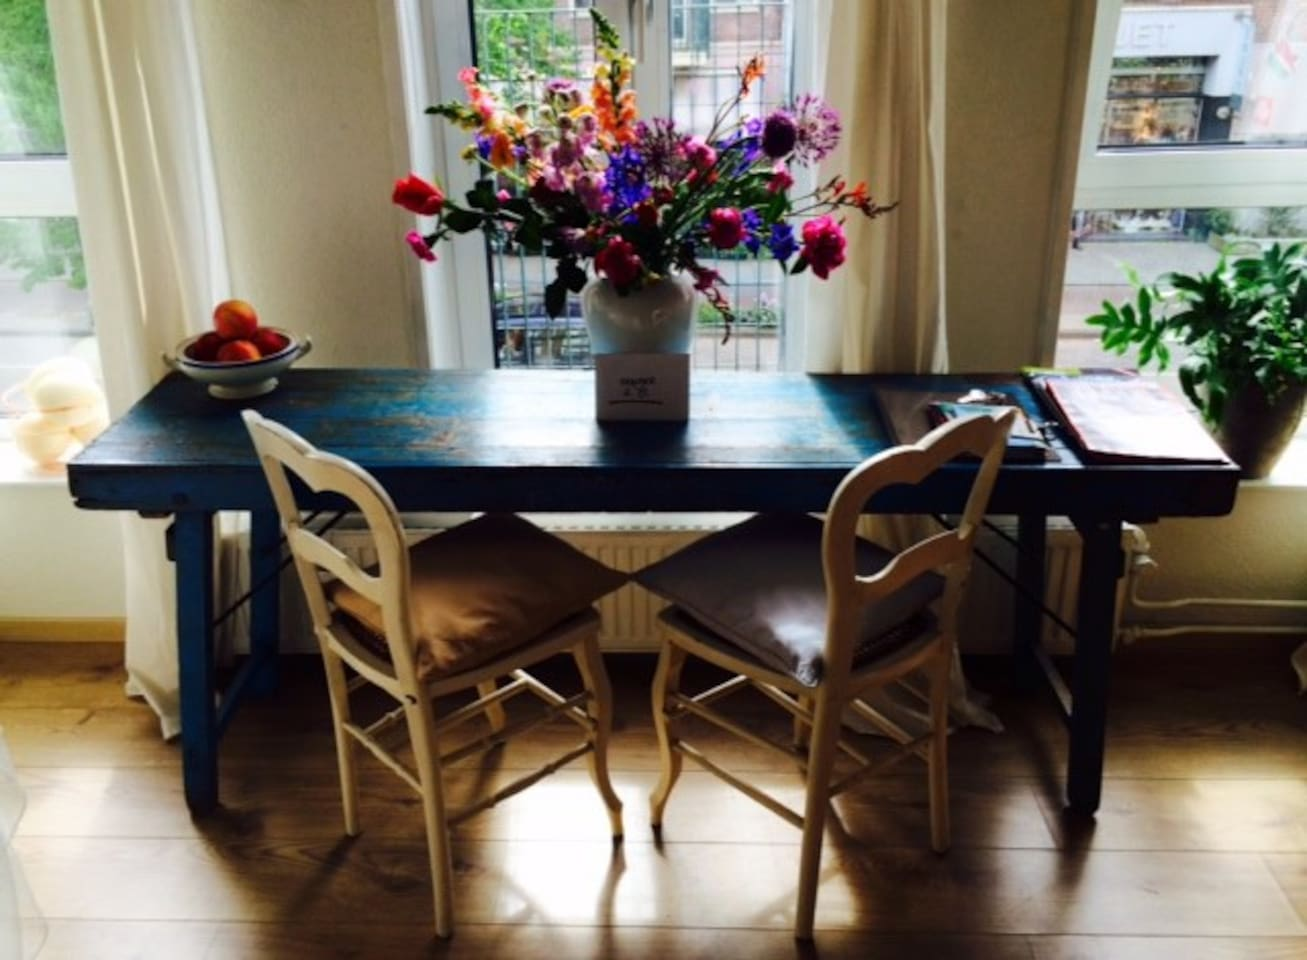 The large table for two in front of an opening balcony door; to eat, work, read, write, relax